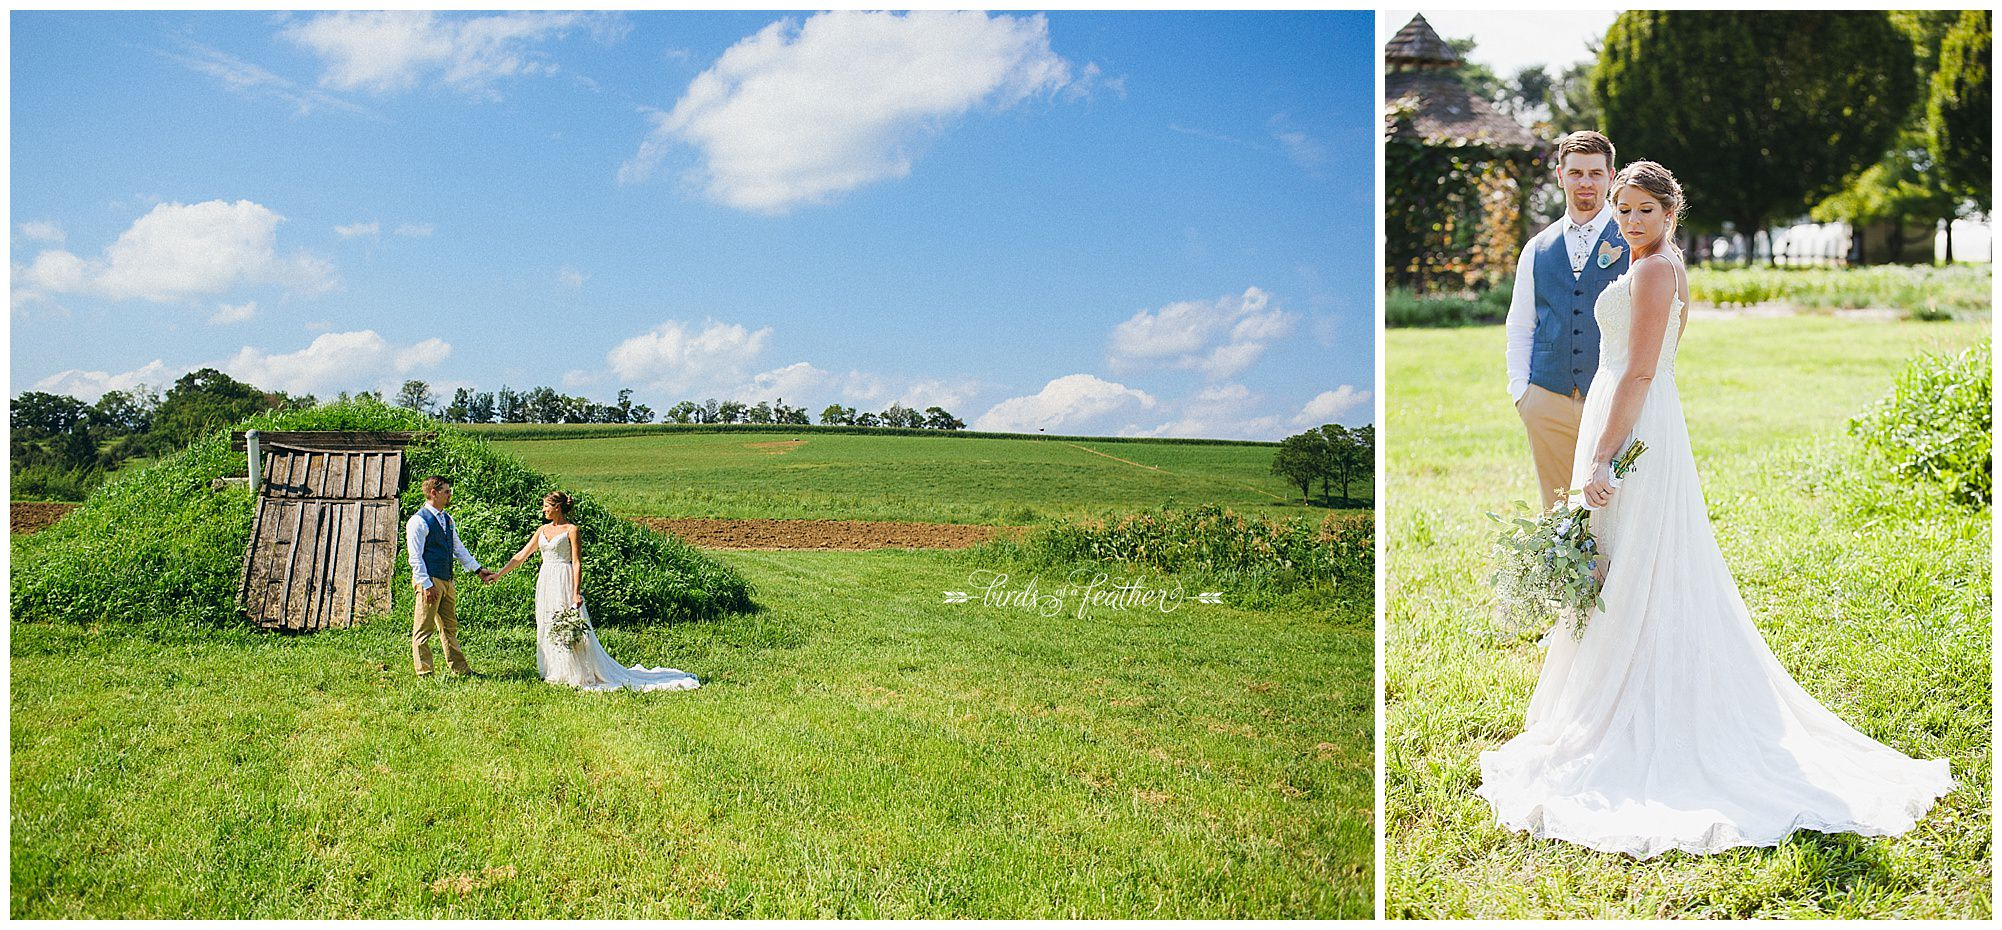 Birds of a Feather Photography Rodale Institute Kutztown Pa Wedding Photographer 19